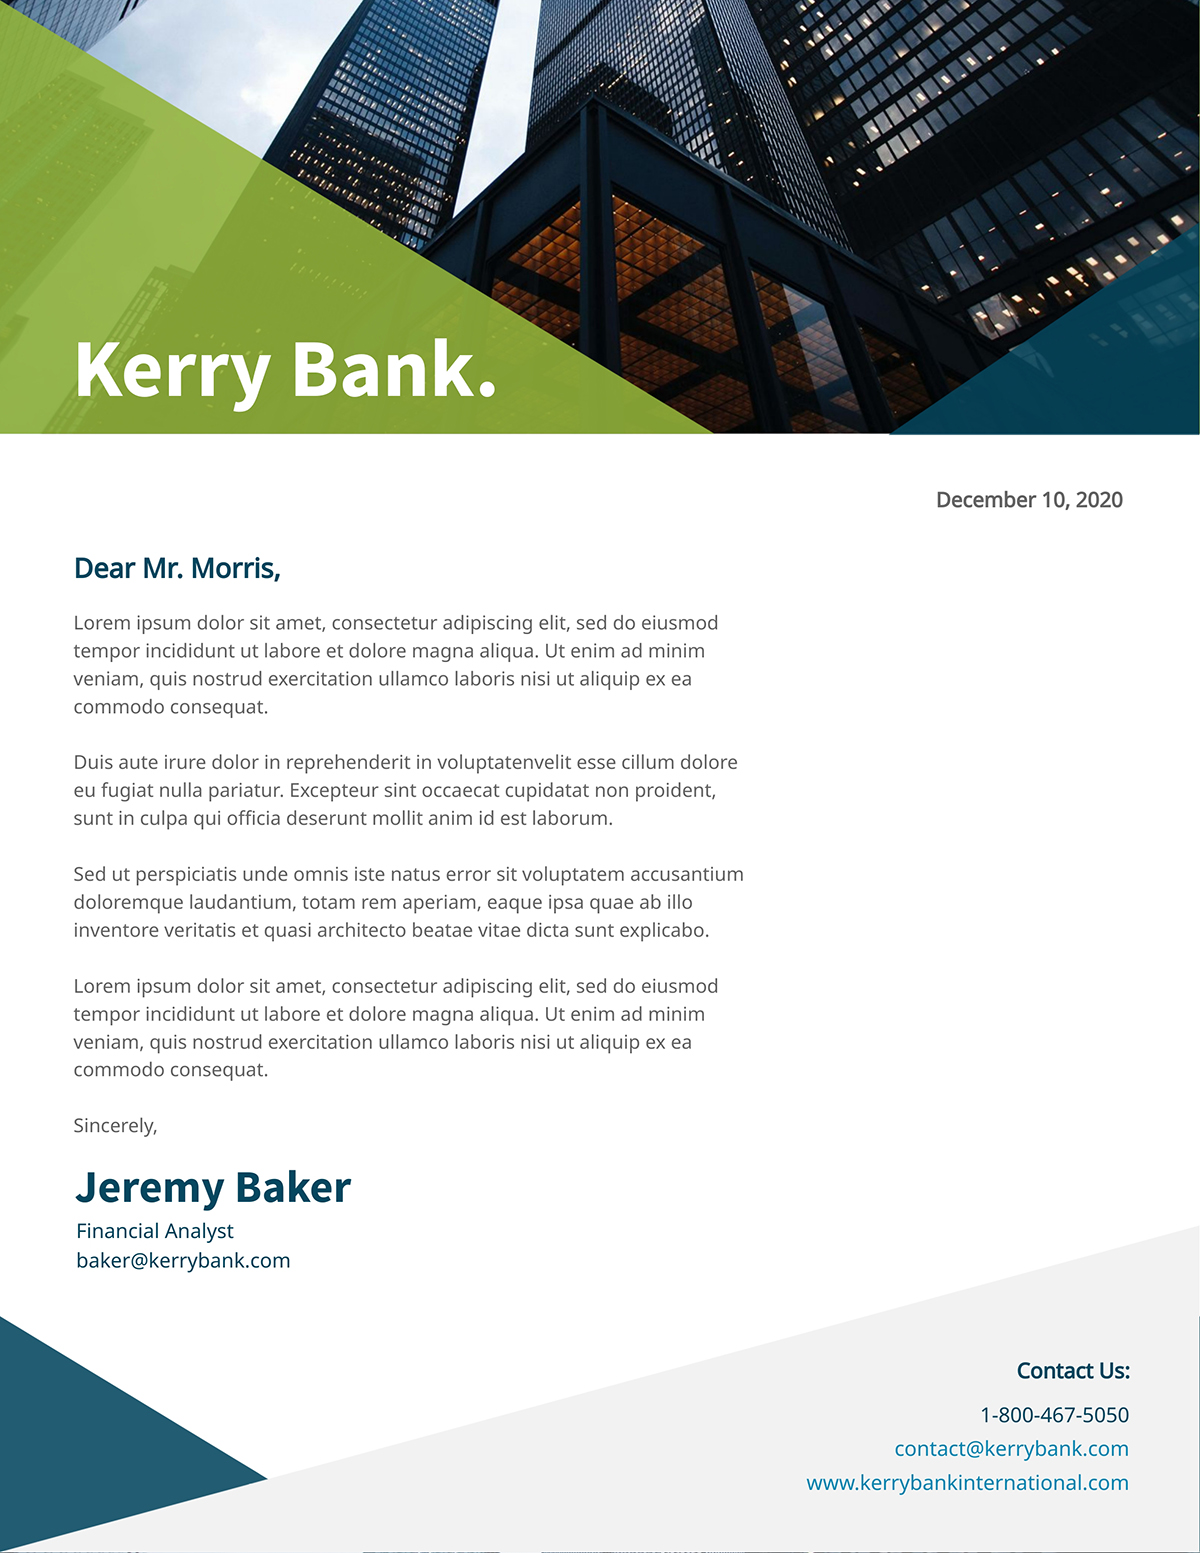 A bank letterhead template available to customize in Visme.